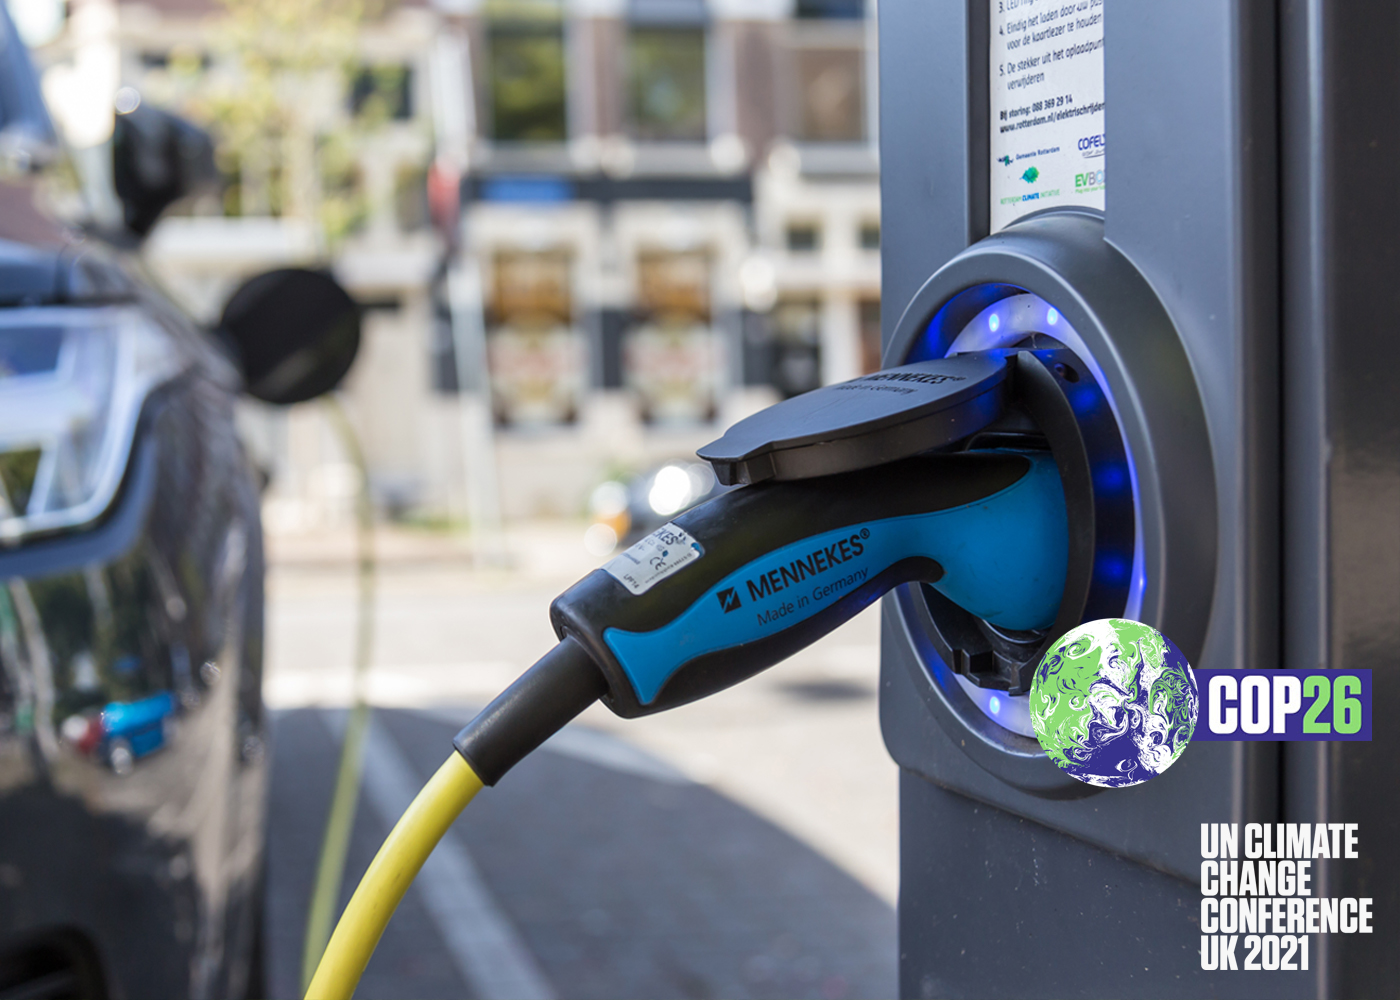 Iconic chargepoint design competition launched for COP26 unveiling